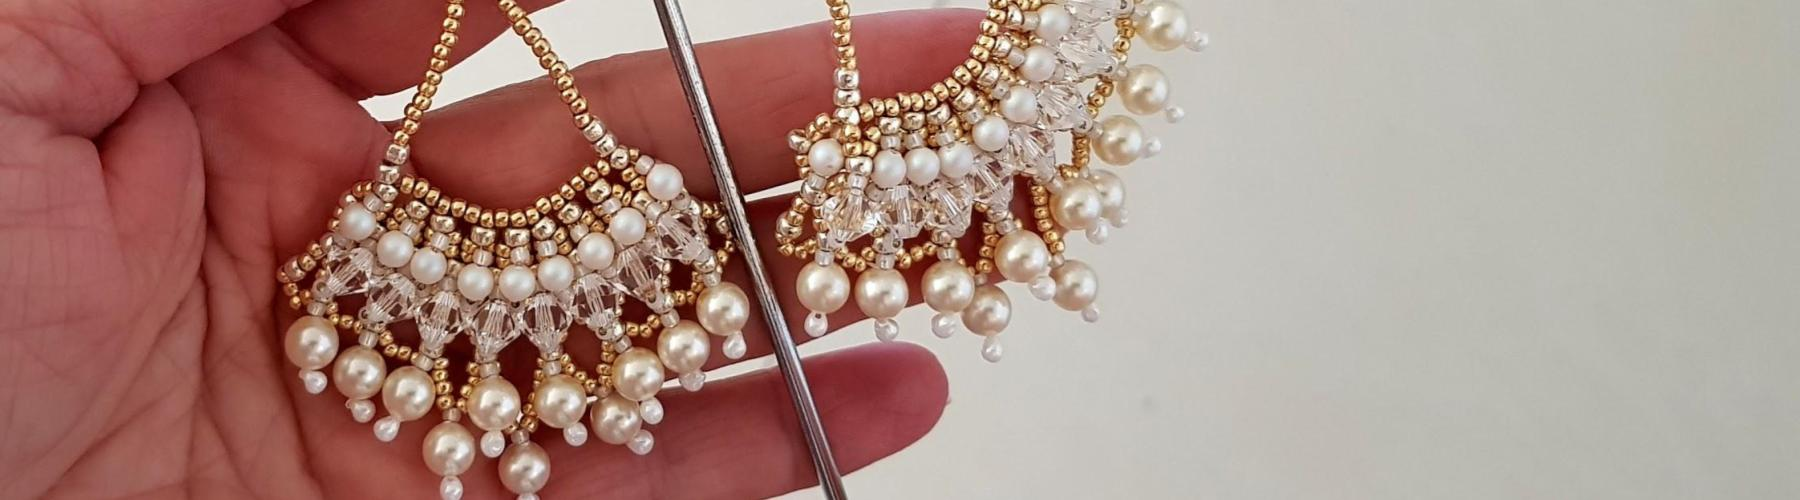 Pearl Earrings For The Purest Love - Kalitheo Jewellery - kalitheo.com.au